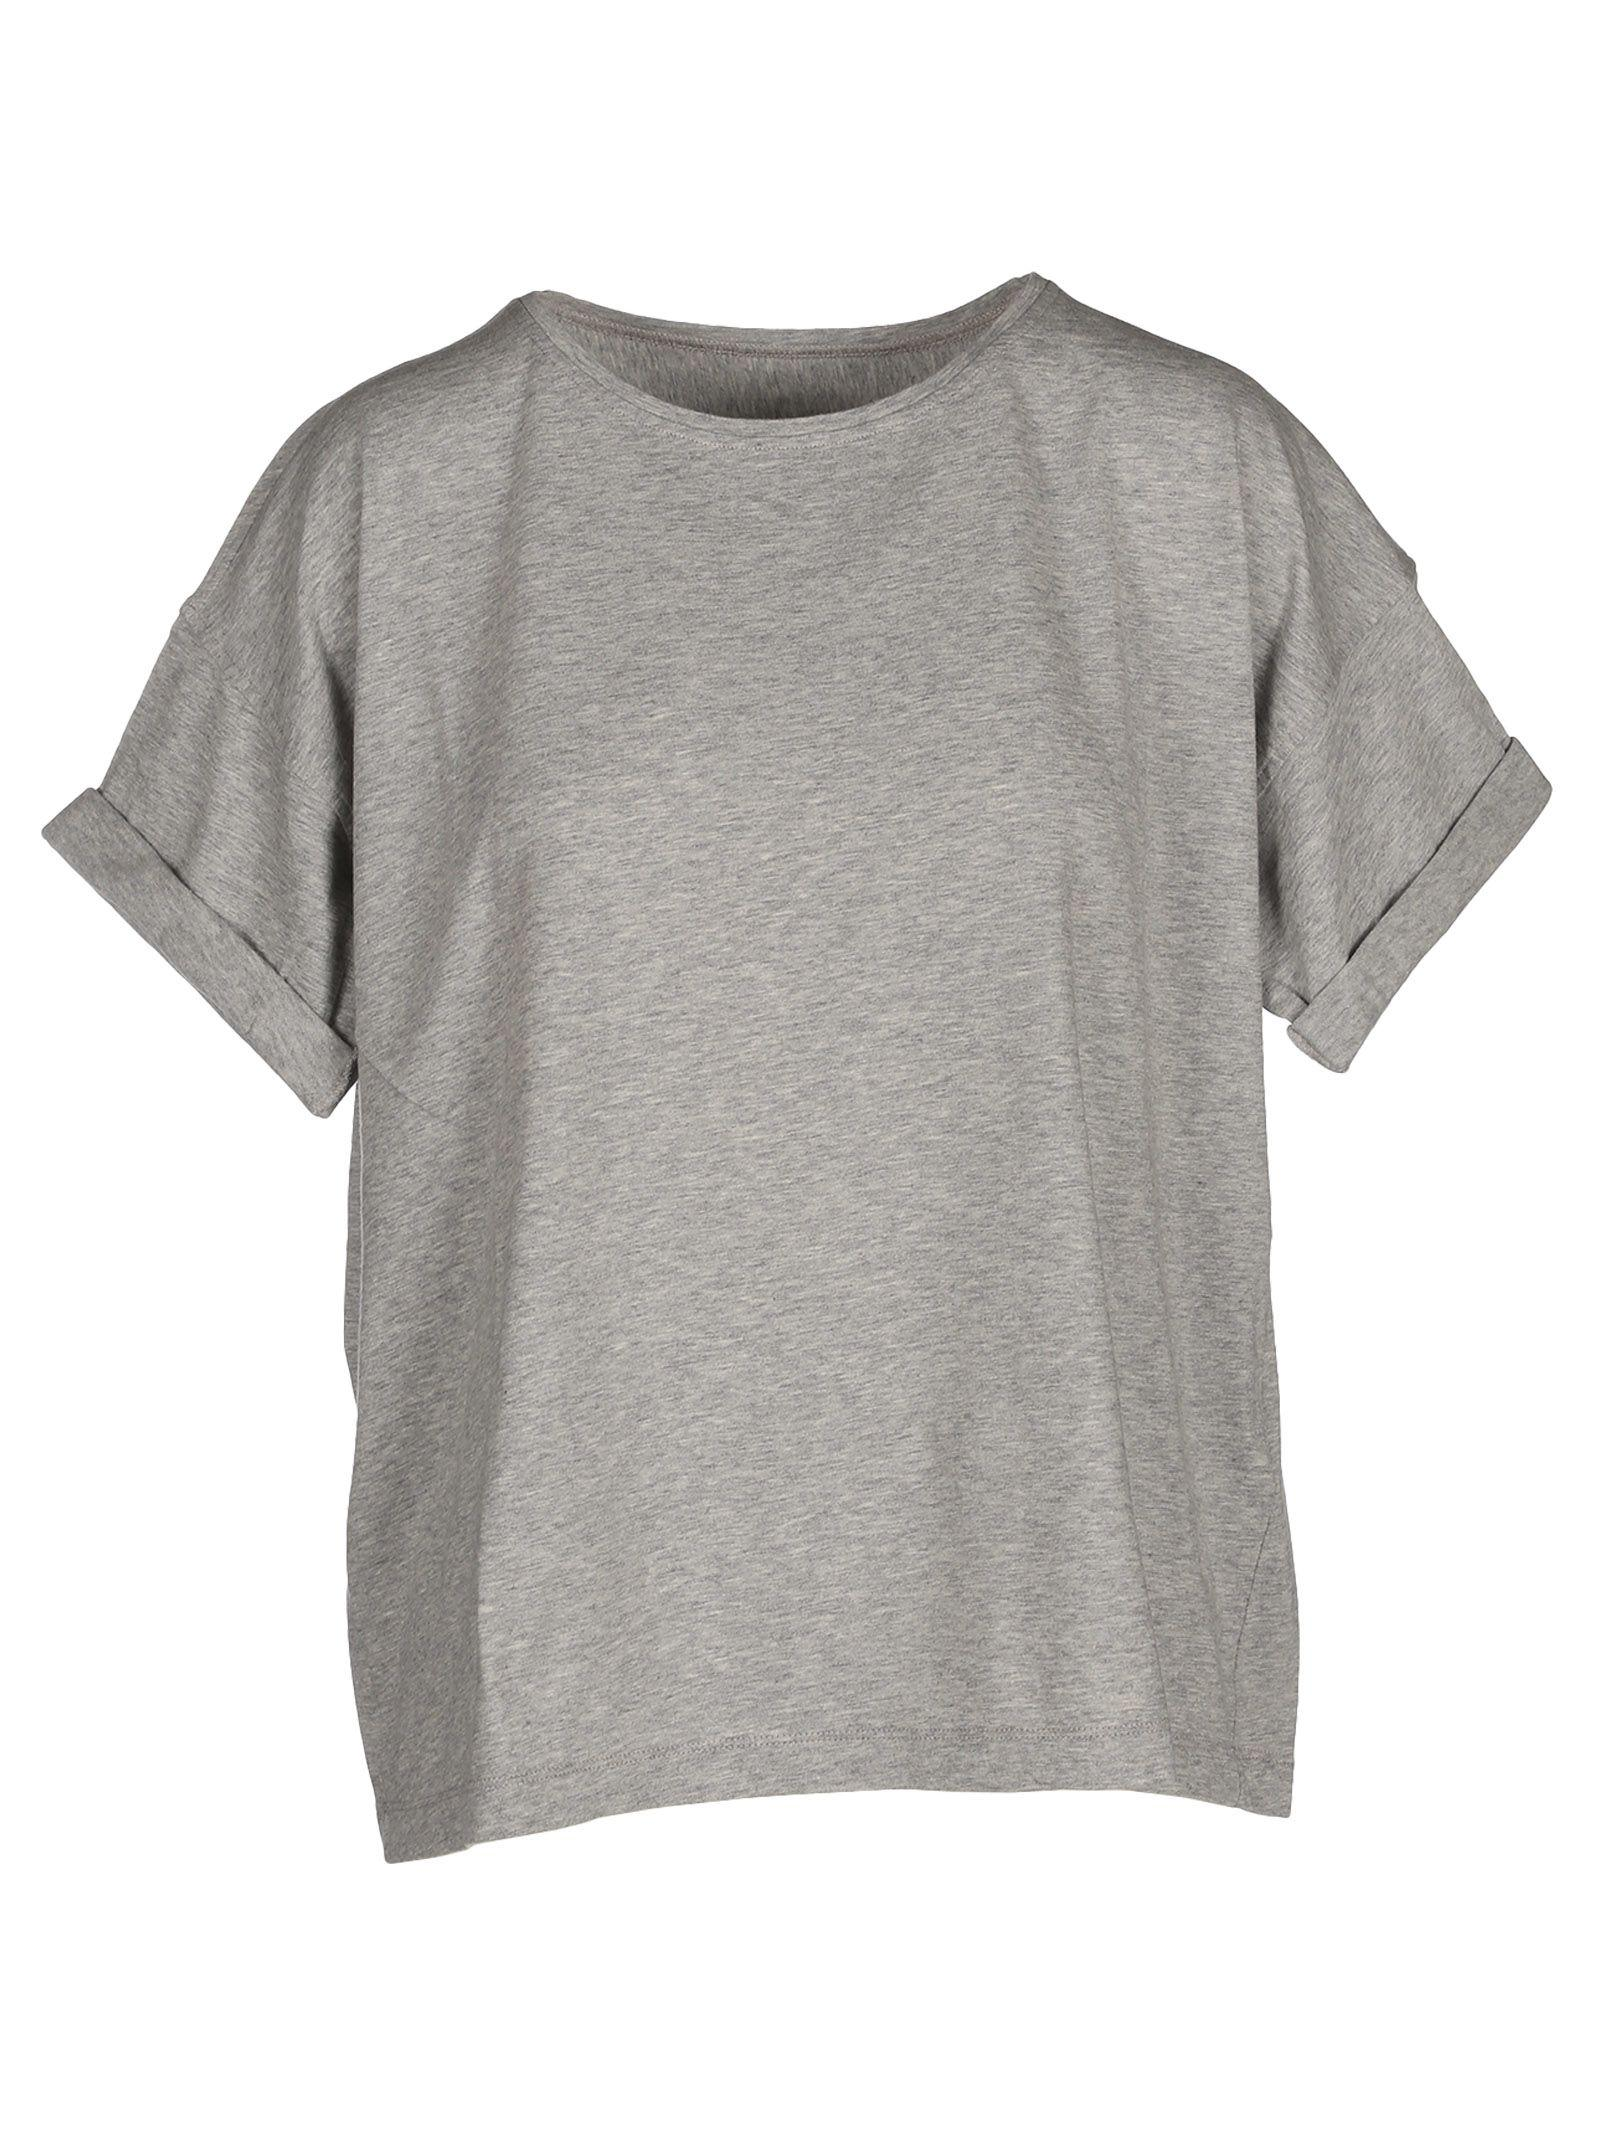 Mm6 Maison Margiela Cotton T-shirt In Grey Mel